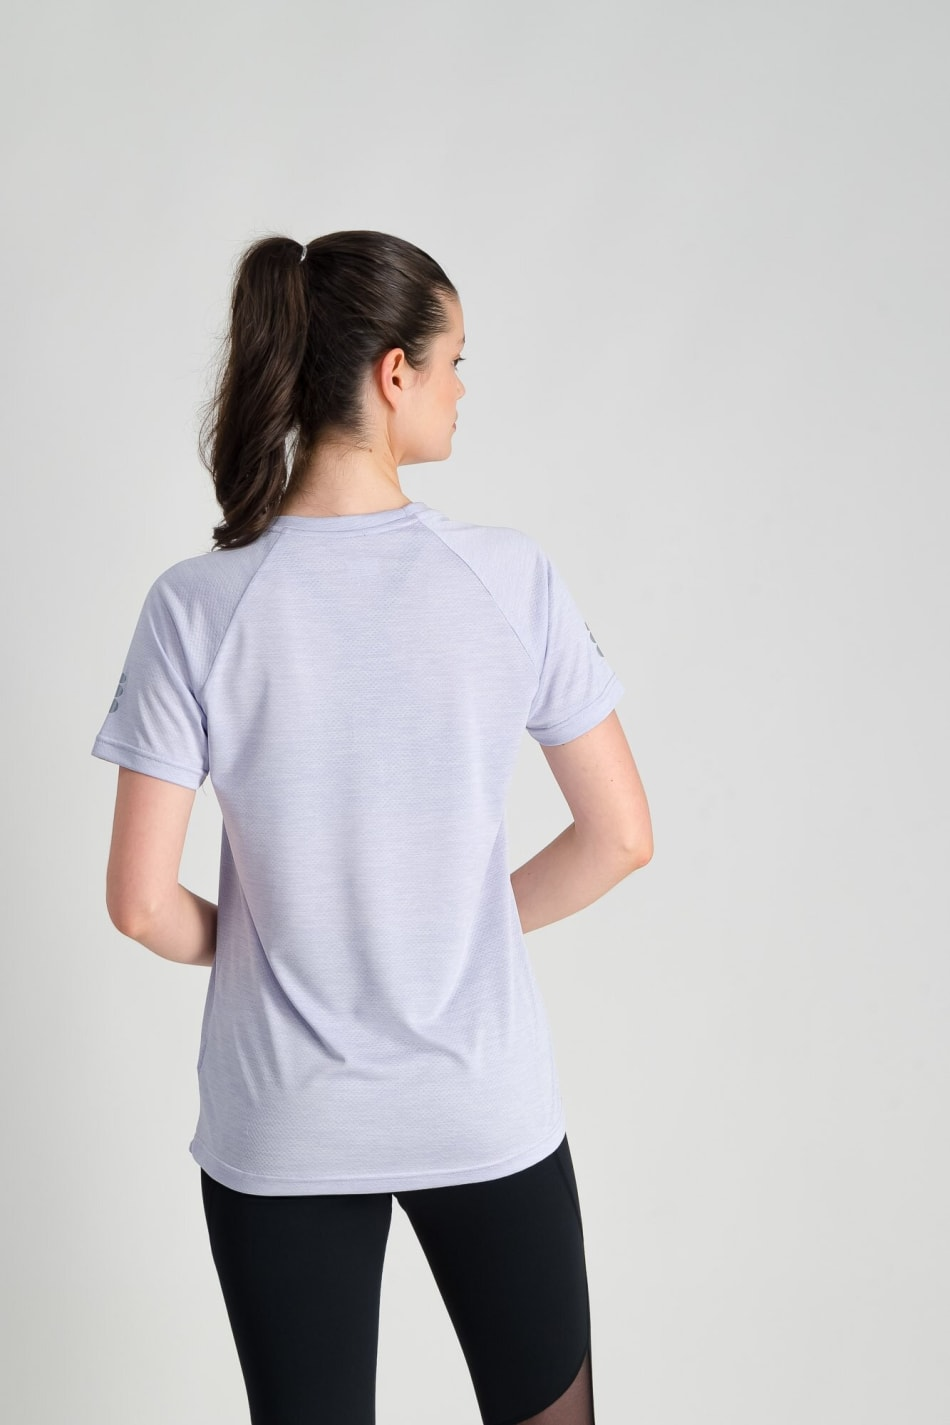 First Ascent Women's Corefit Run Tee, product, variation 4